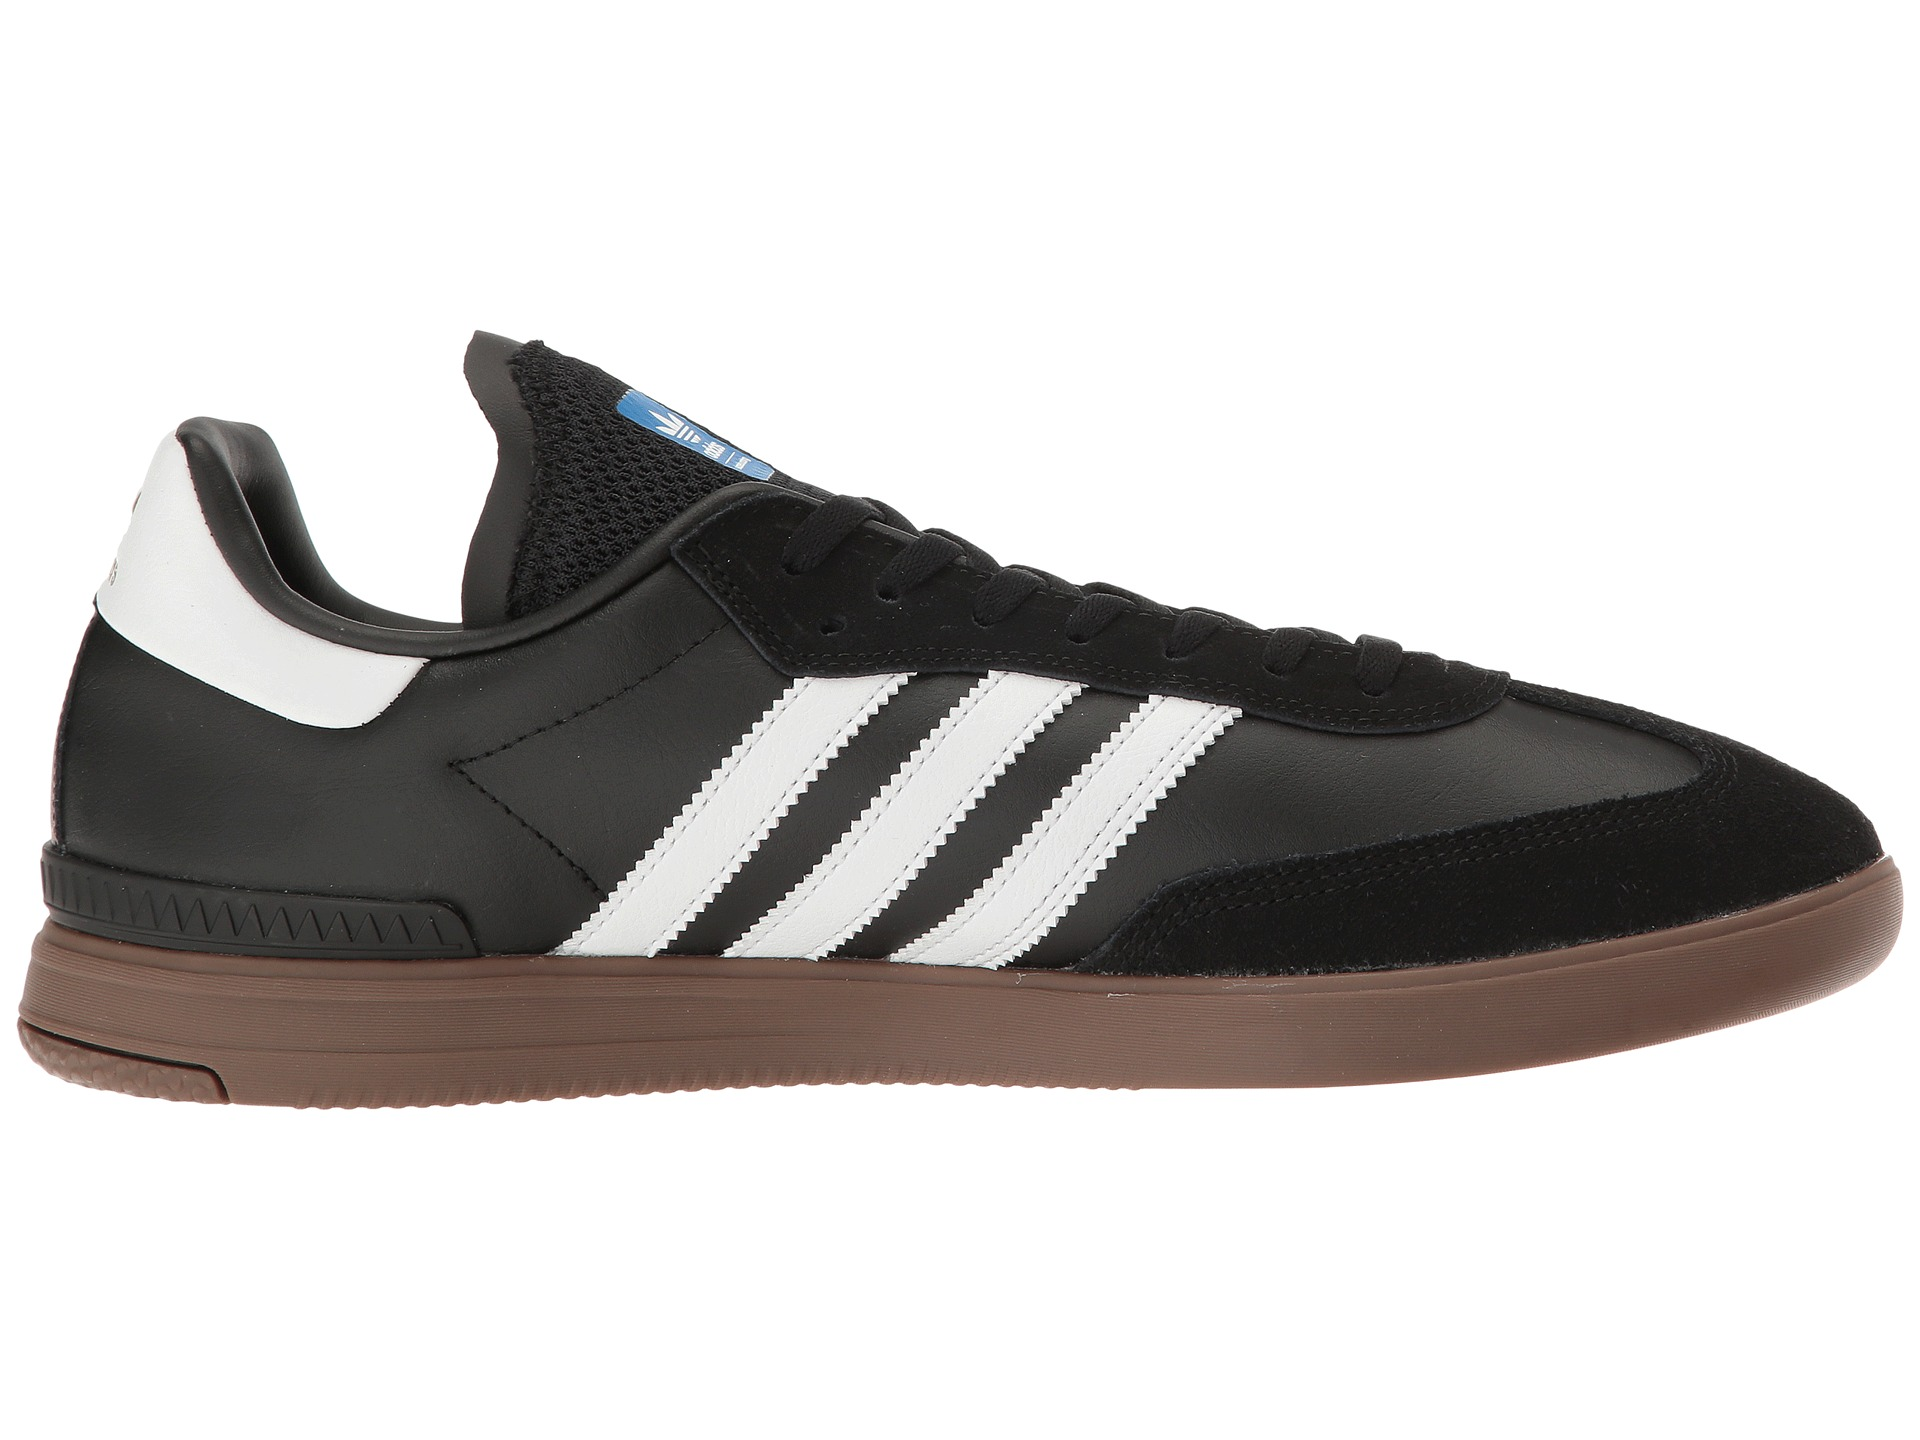 adidas skateboarding samba adv at. Black Bedroom Furniture Sets. Home Design Ideas